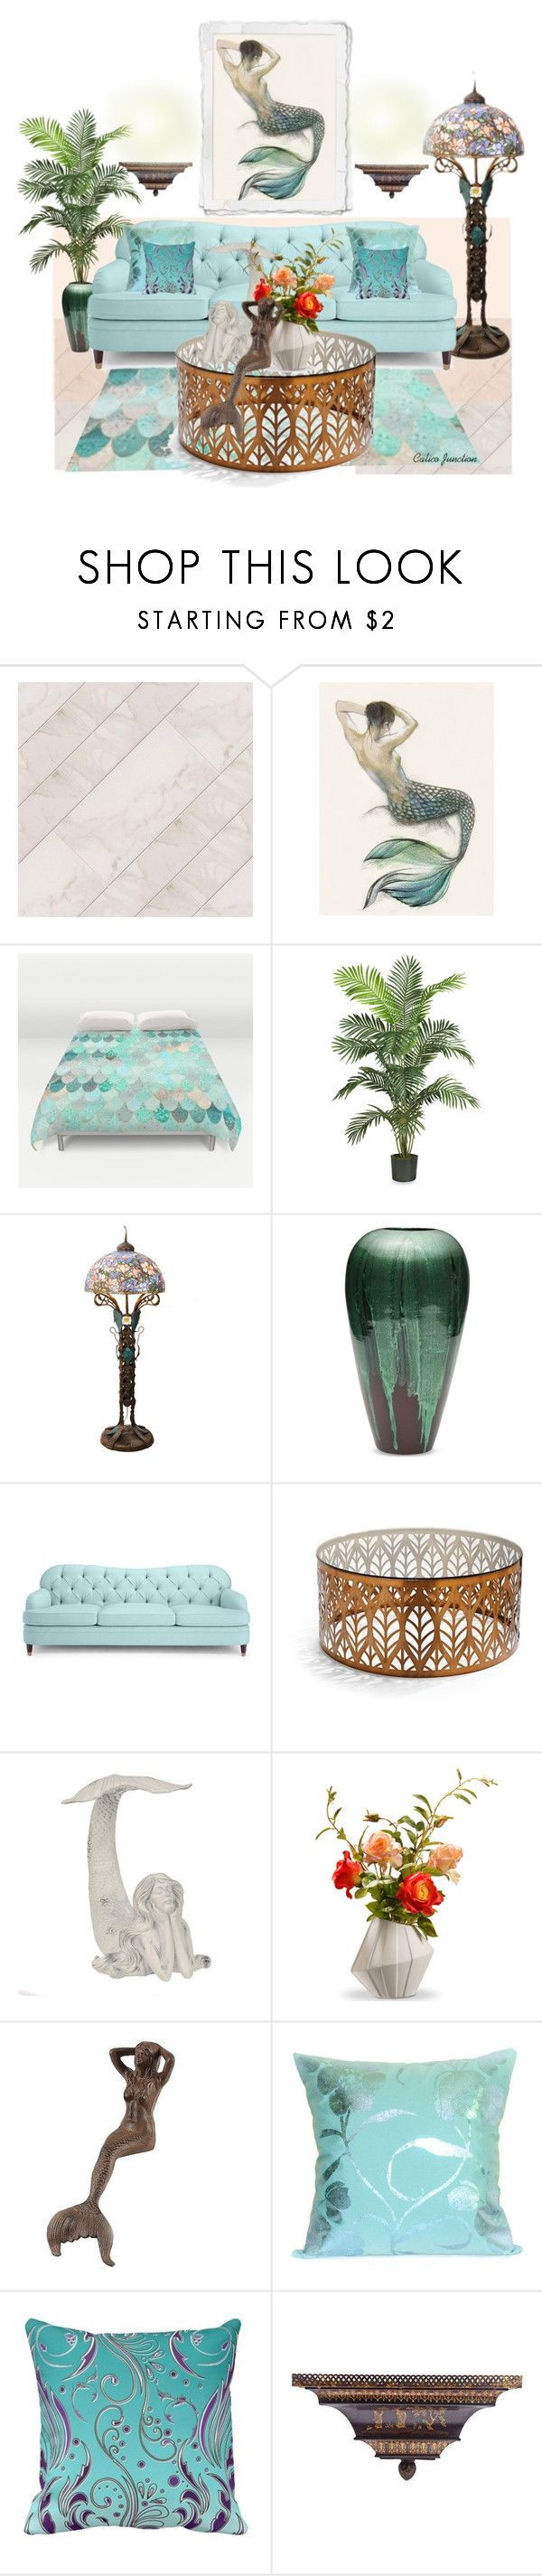 """""""Mermaid"""" by calicojunction on Polyvore featuring interior, interiors, interior design, home, home decor, interior decorating, Bombay, Kate Spade, Frontgate and National Tree Company"""